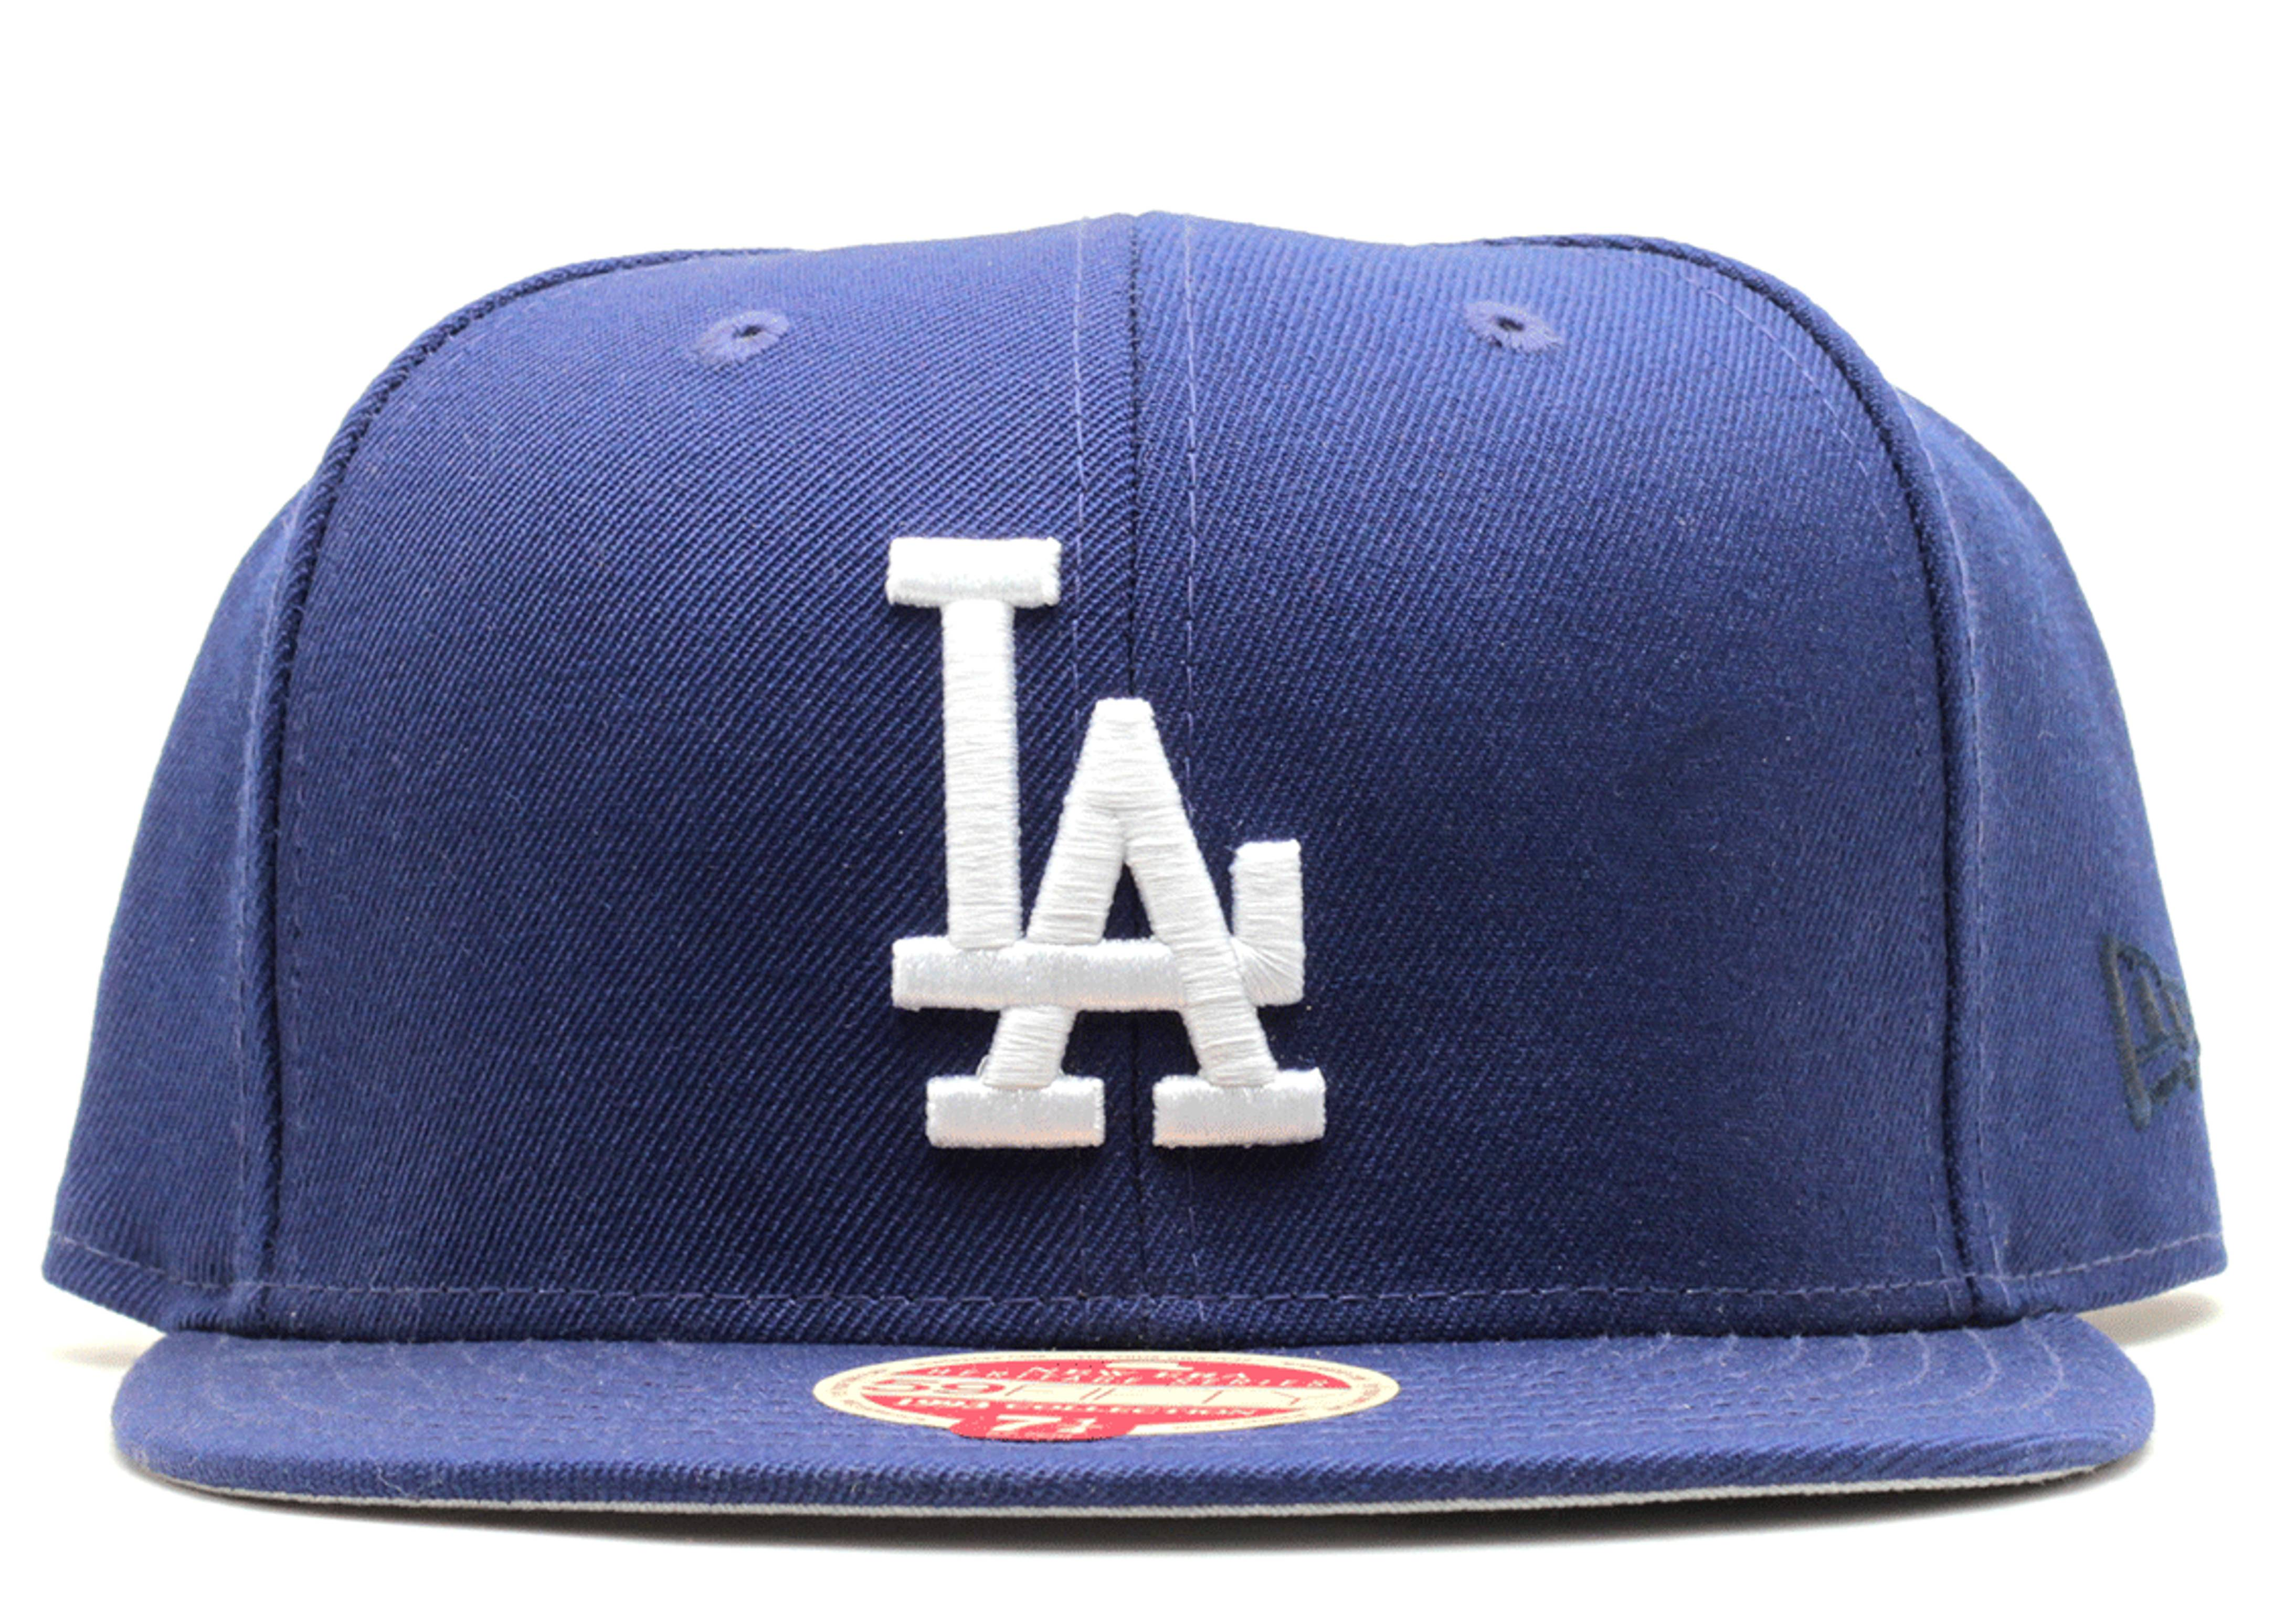 "los angeles dodgers fitted ""1993 collection"""